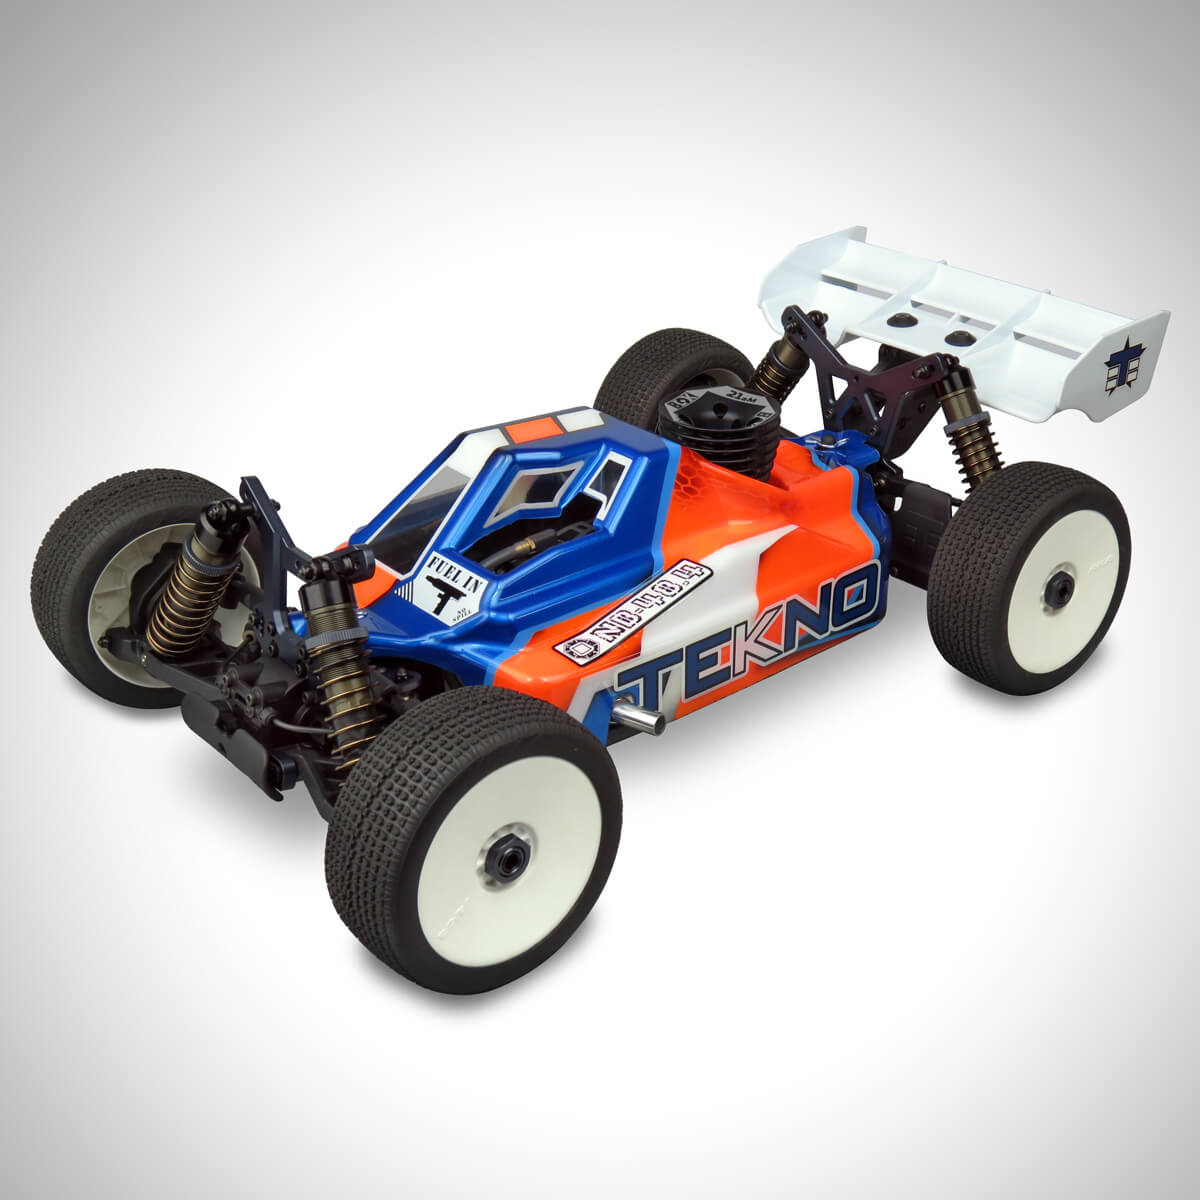 TKR8300 - NB48 4 1/8th 4WD Competition Nitro Buggy Kit